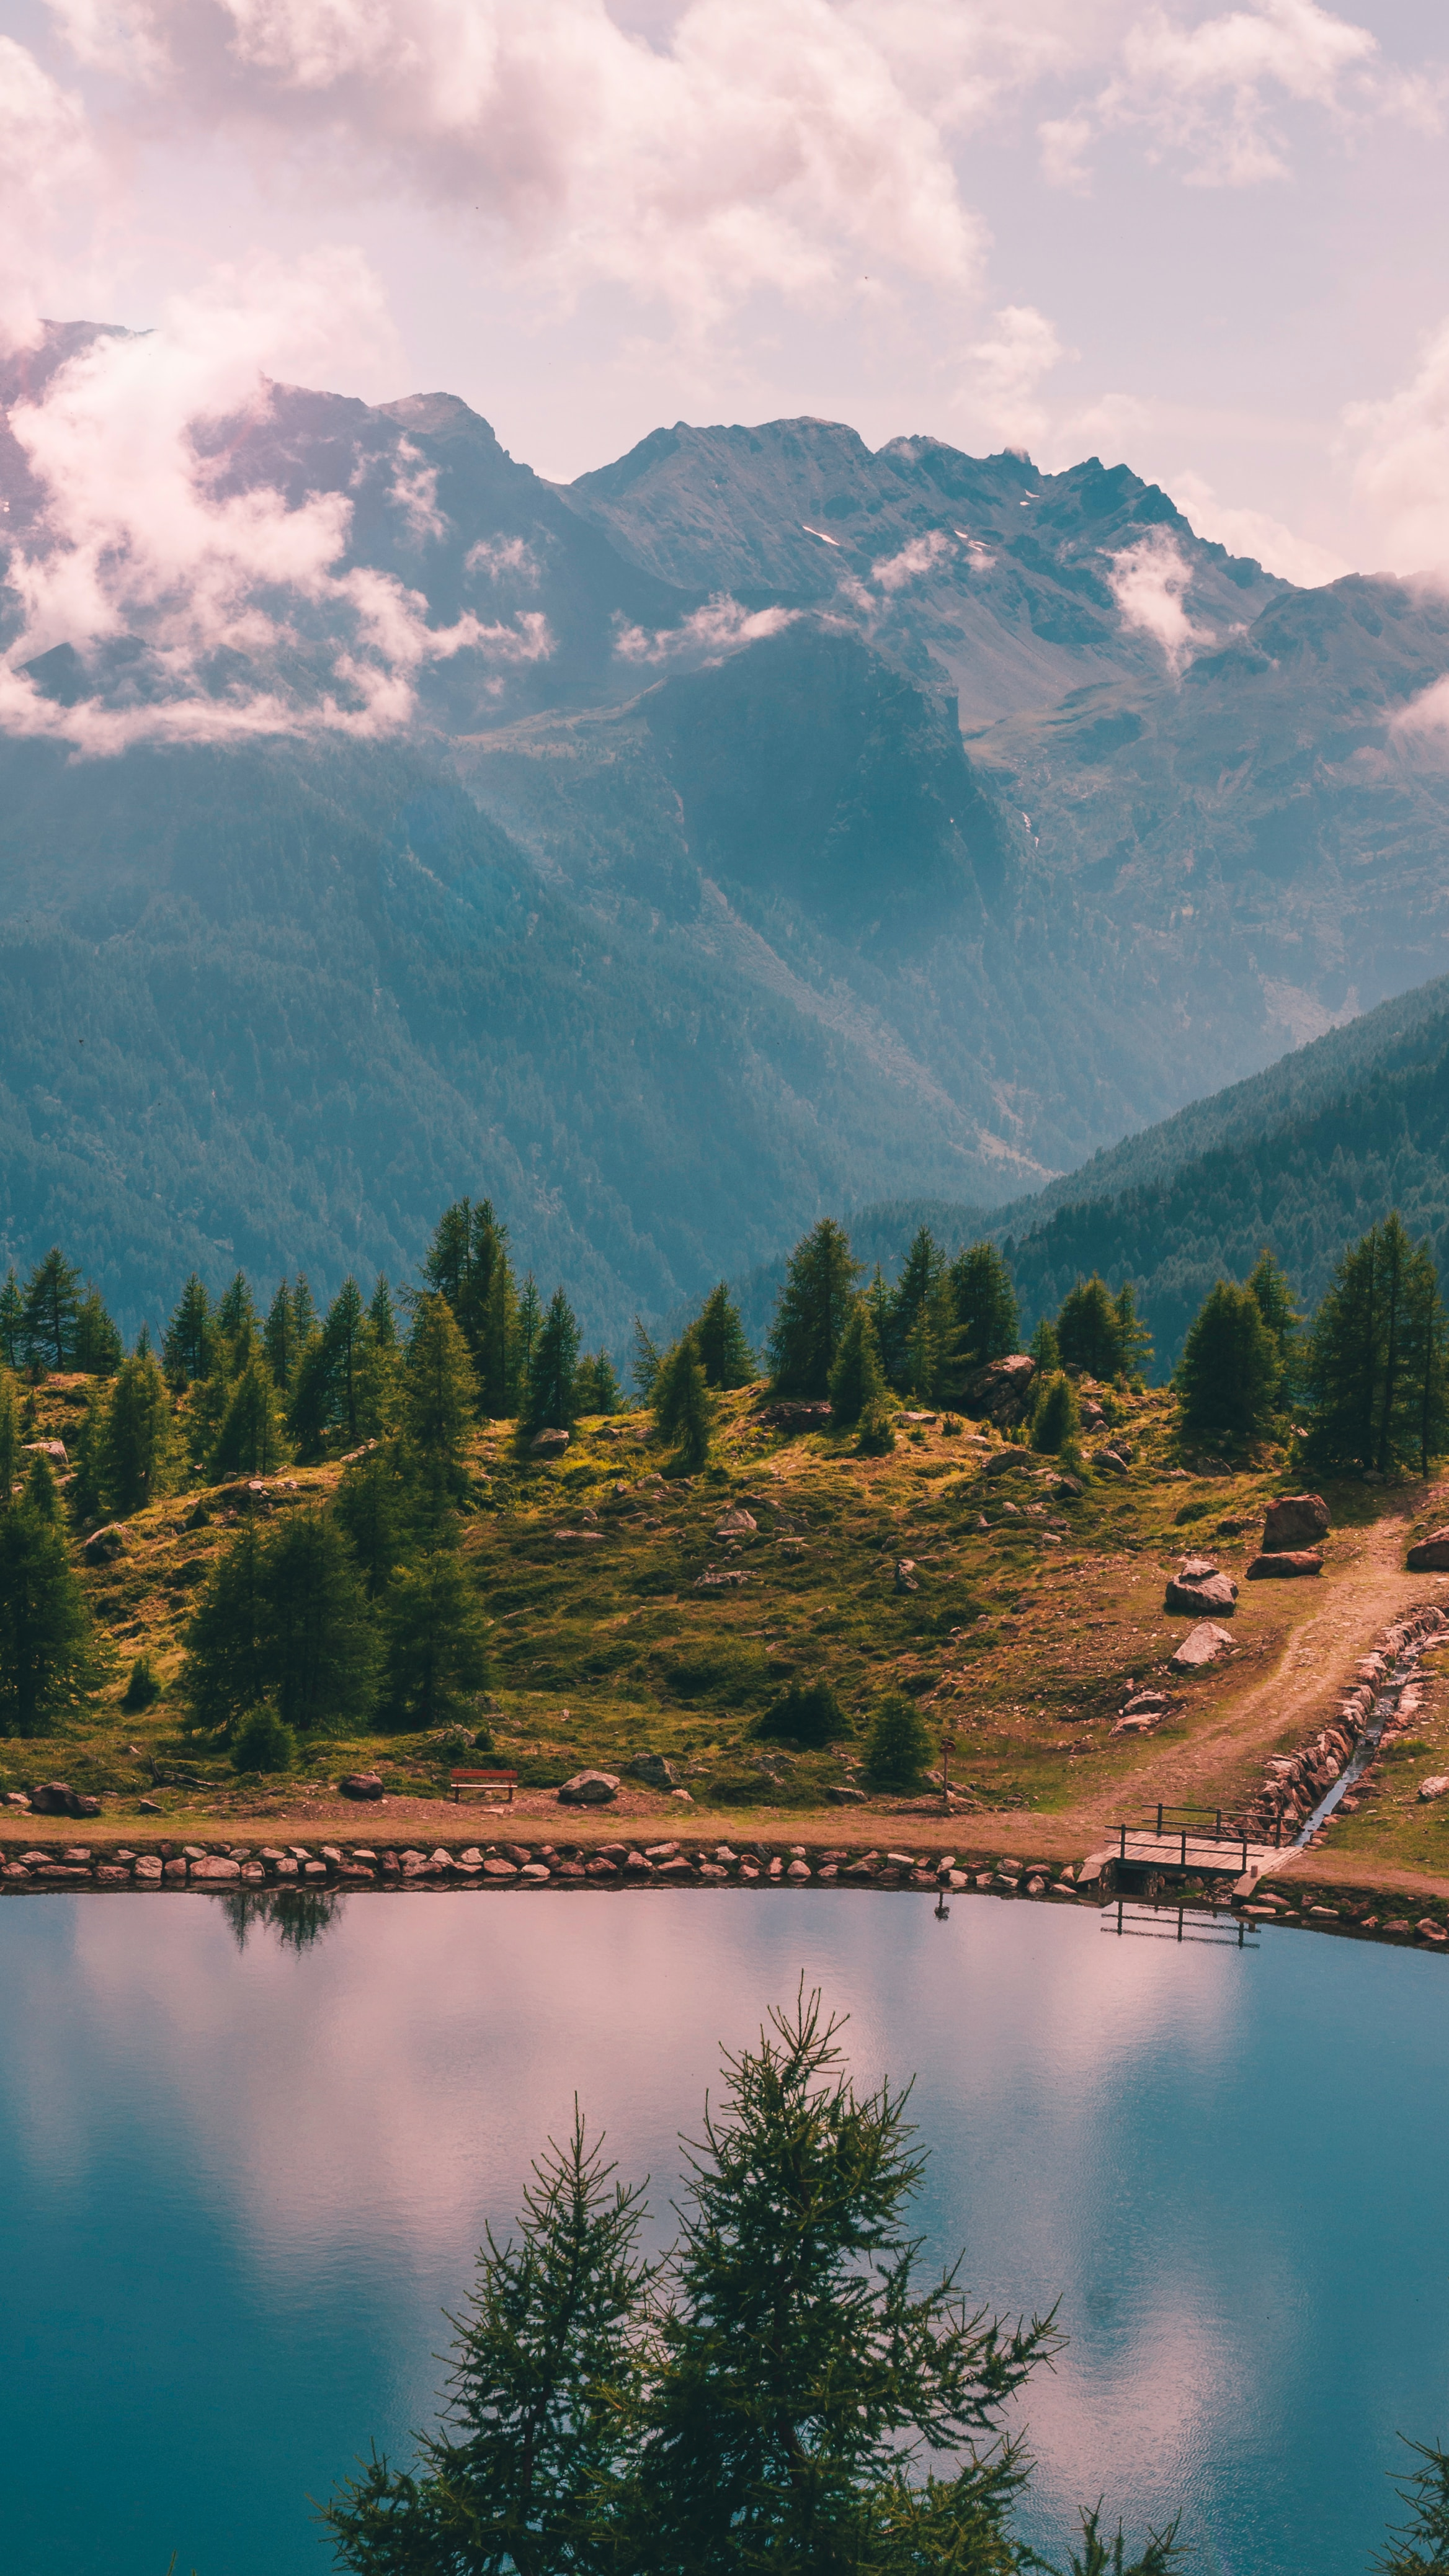 62227 download wallpaper Nature, Lake, Trees, Shore, Bank, View From Above, Mountains, Landscape screensavers and pictures for free